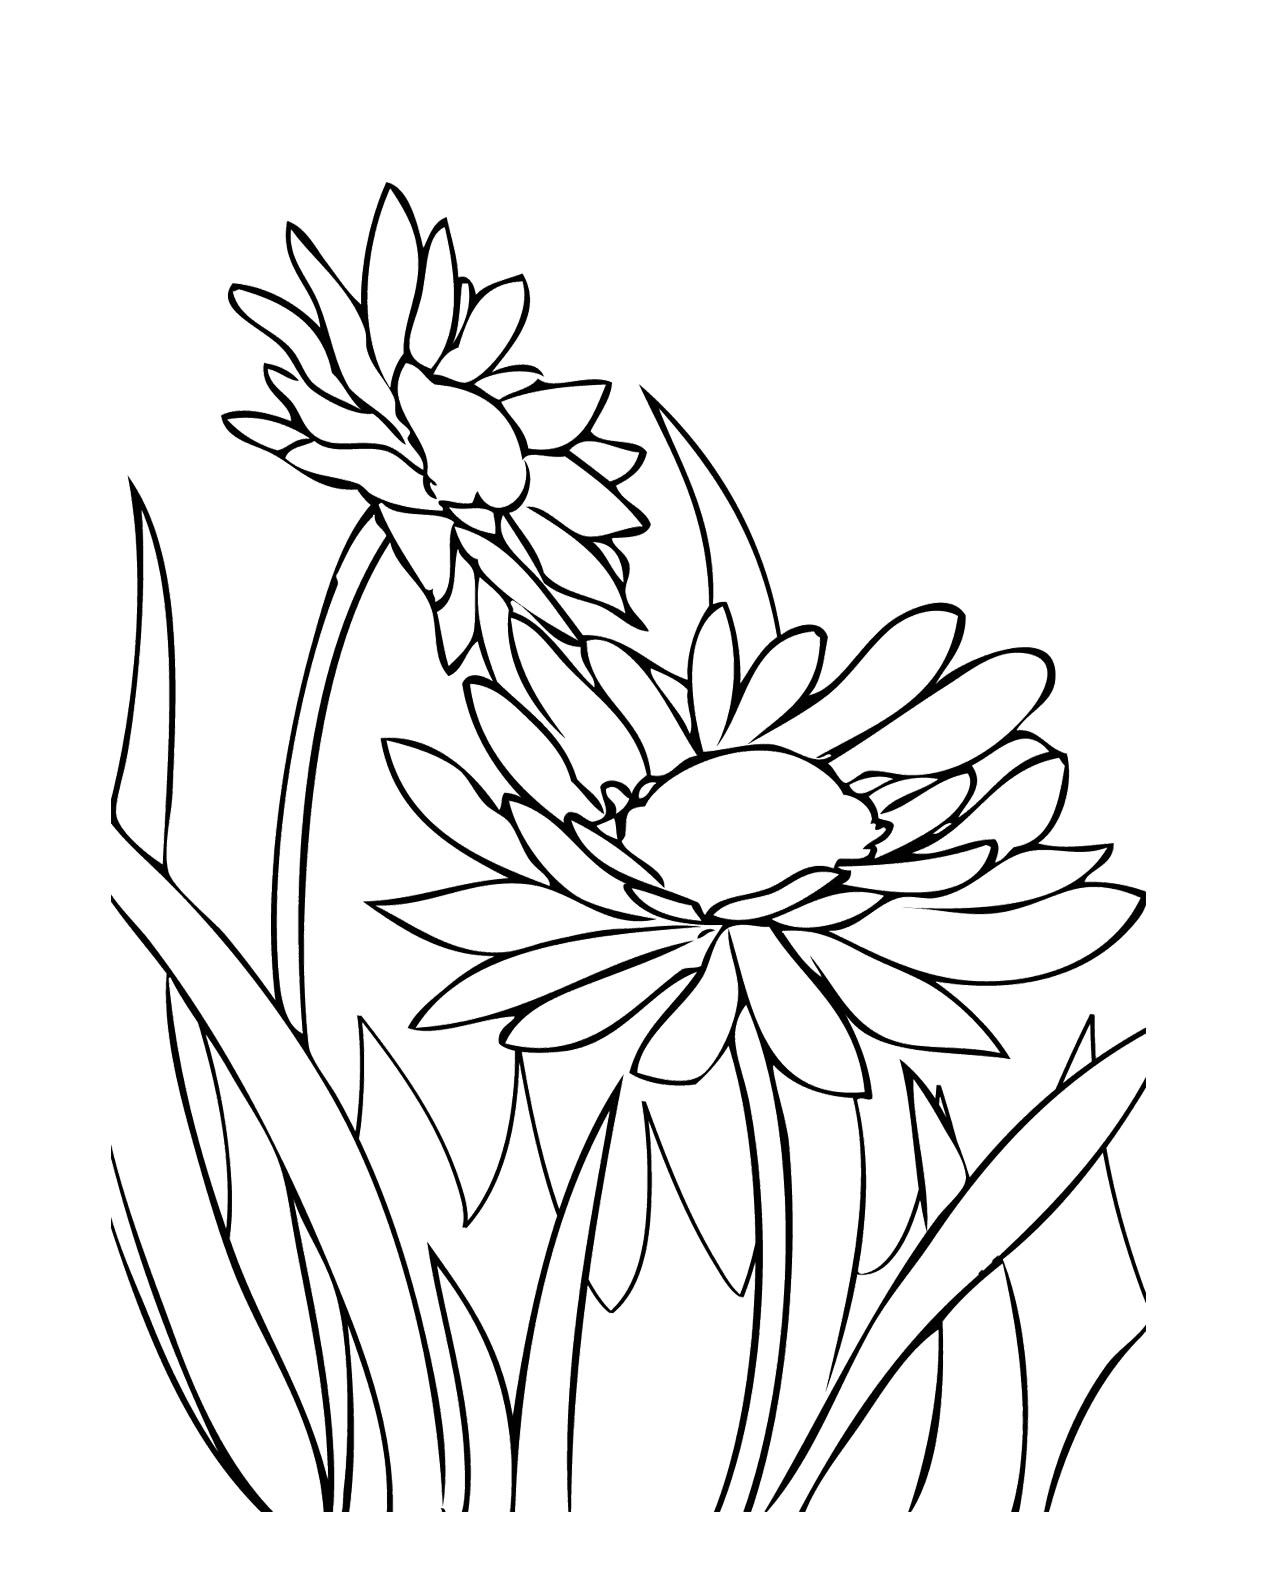 flower mosaic coloring pages | Growing Spring Flowers Coloring Pages | Mosaic Patterns ...